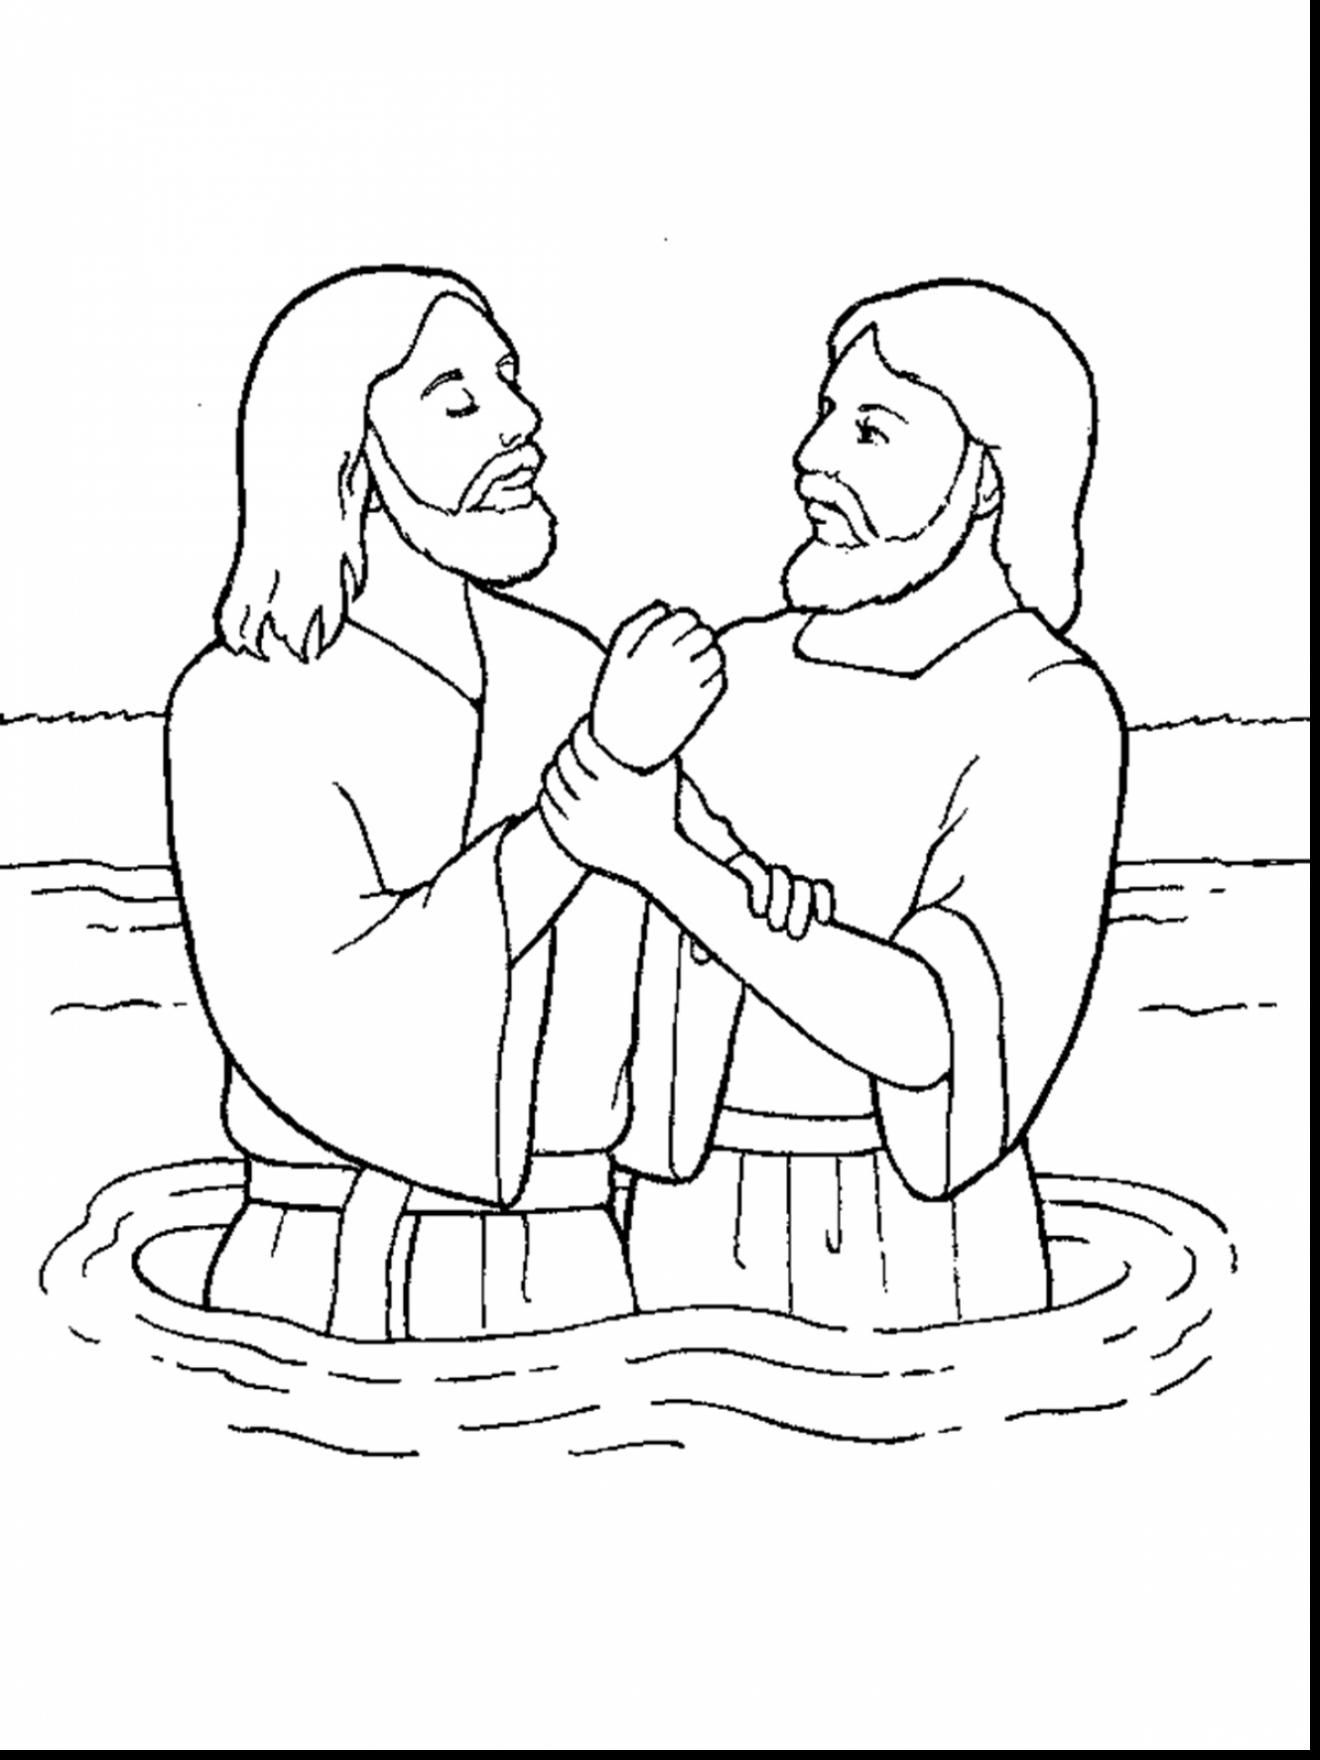 john the baptist coloring pages printable saint john the baptist coloring pages the catholic kid the pages baptist coloring printable john